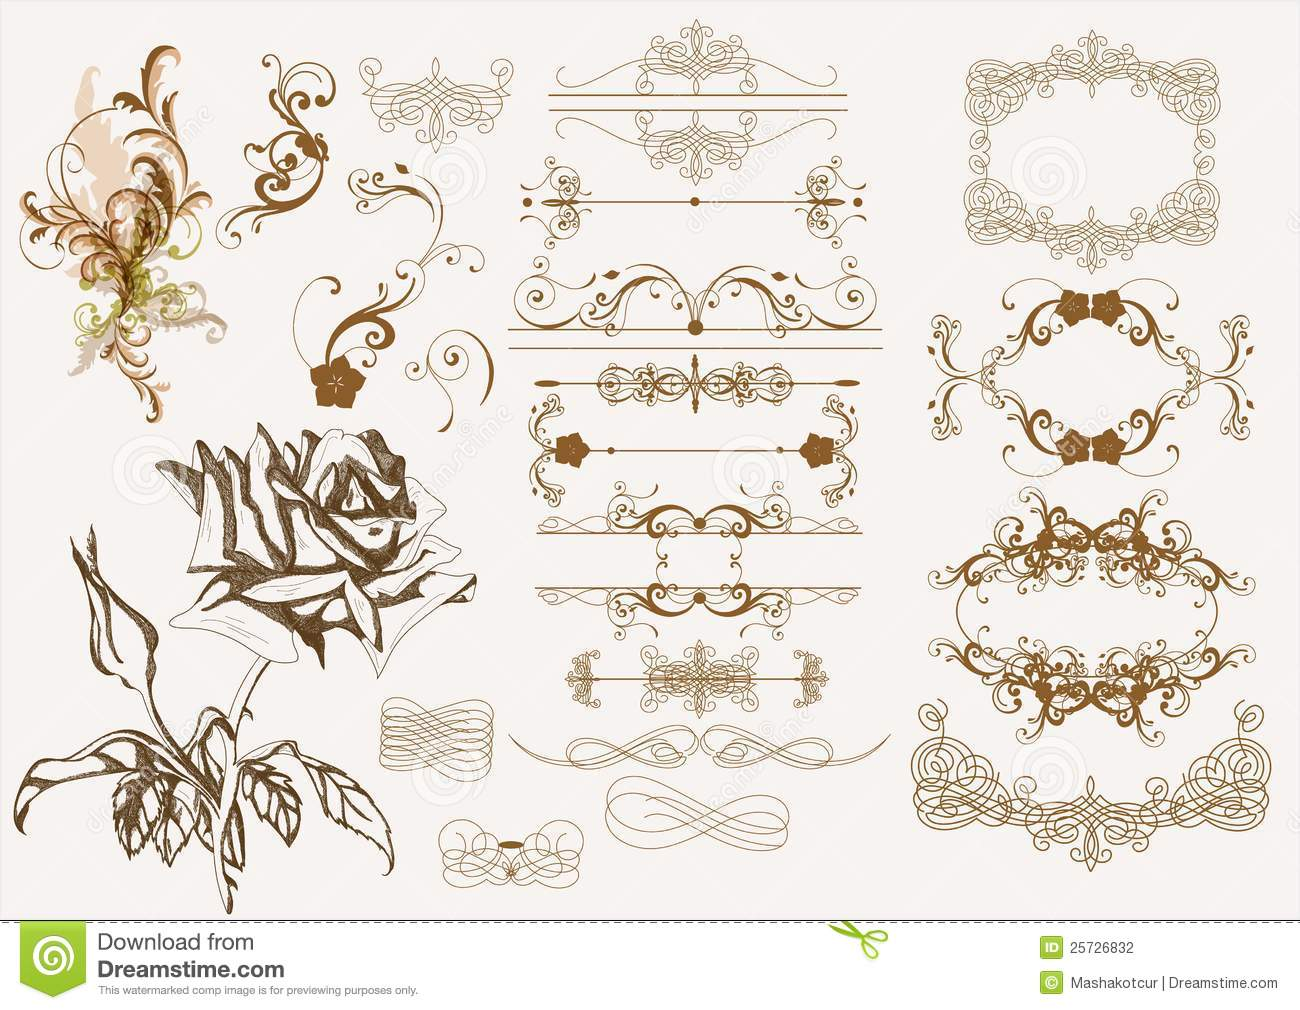 Vintage Design Calligraphic Vintage Design Elements Stock Photography